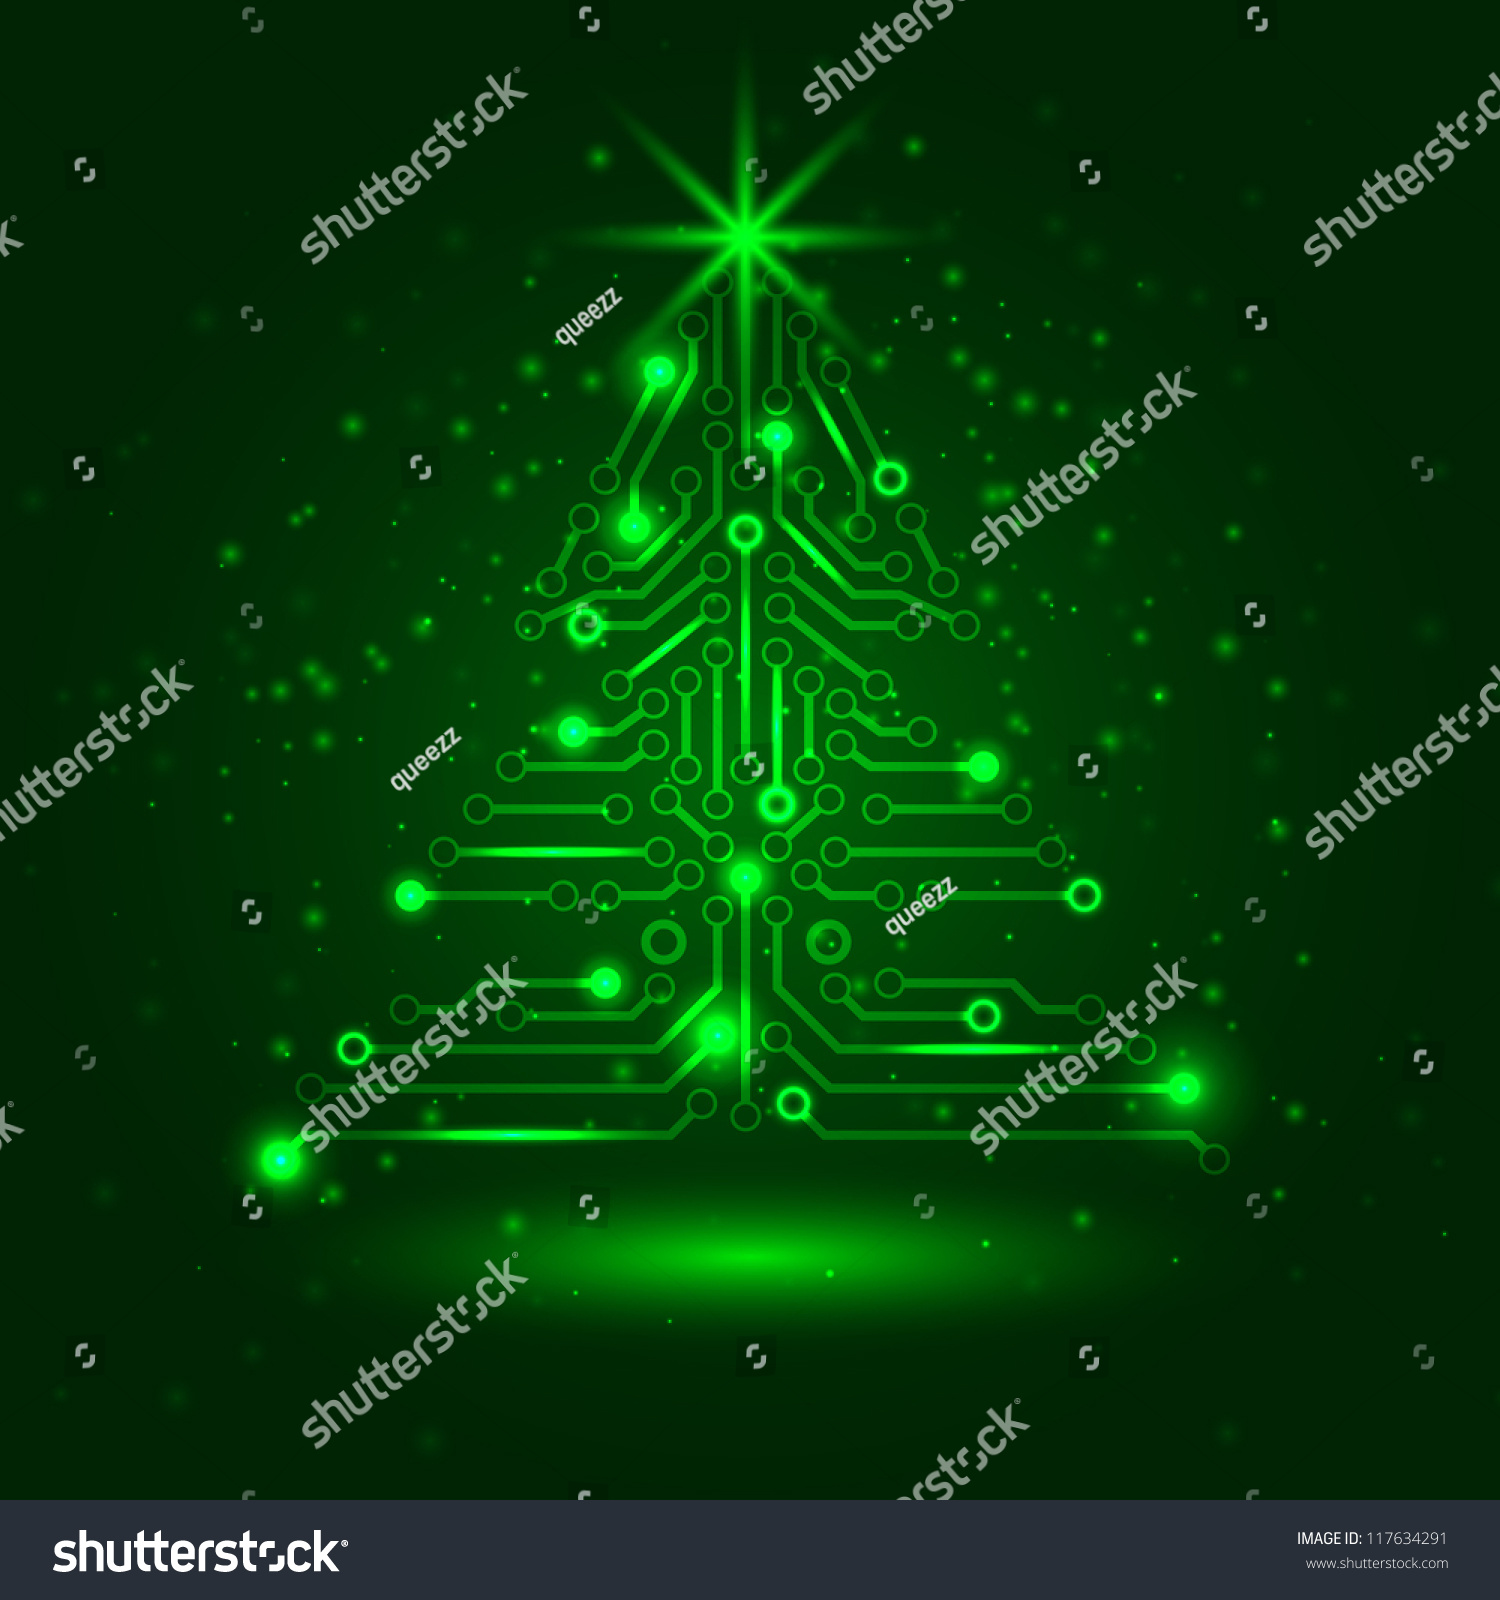 Vector Circuit Board Electronic Tree Digital Tec Stock Photo Image 34279490 Abstract Technology Christmas 117634291 Shutterstock